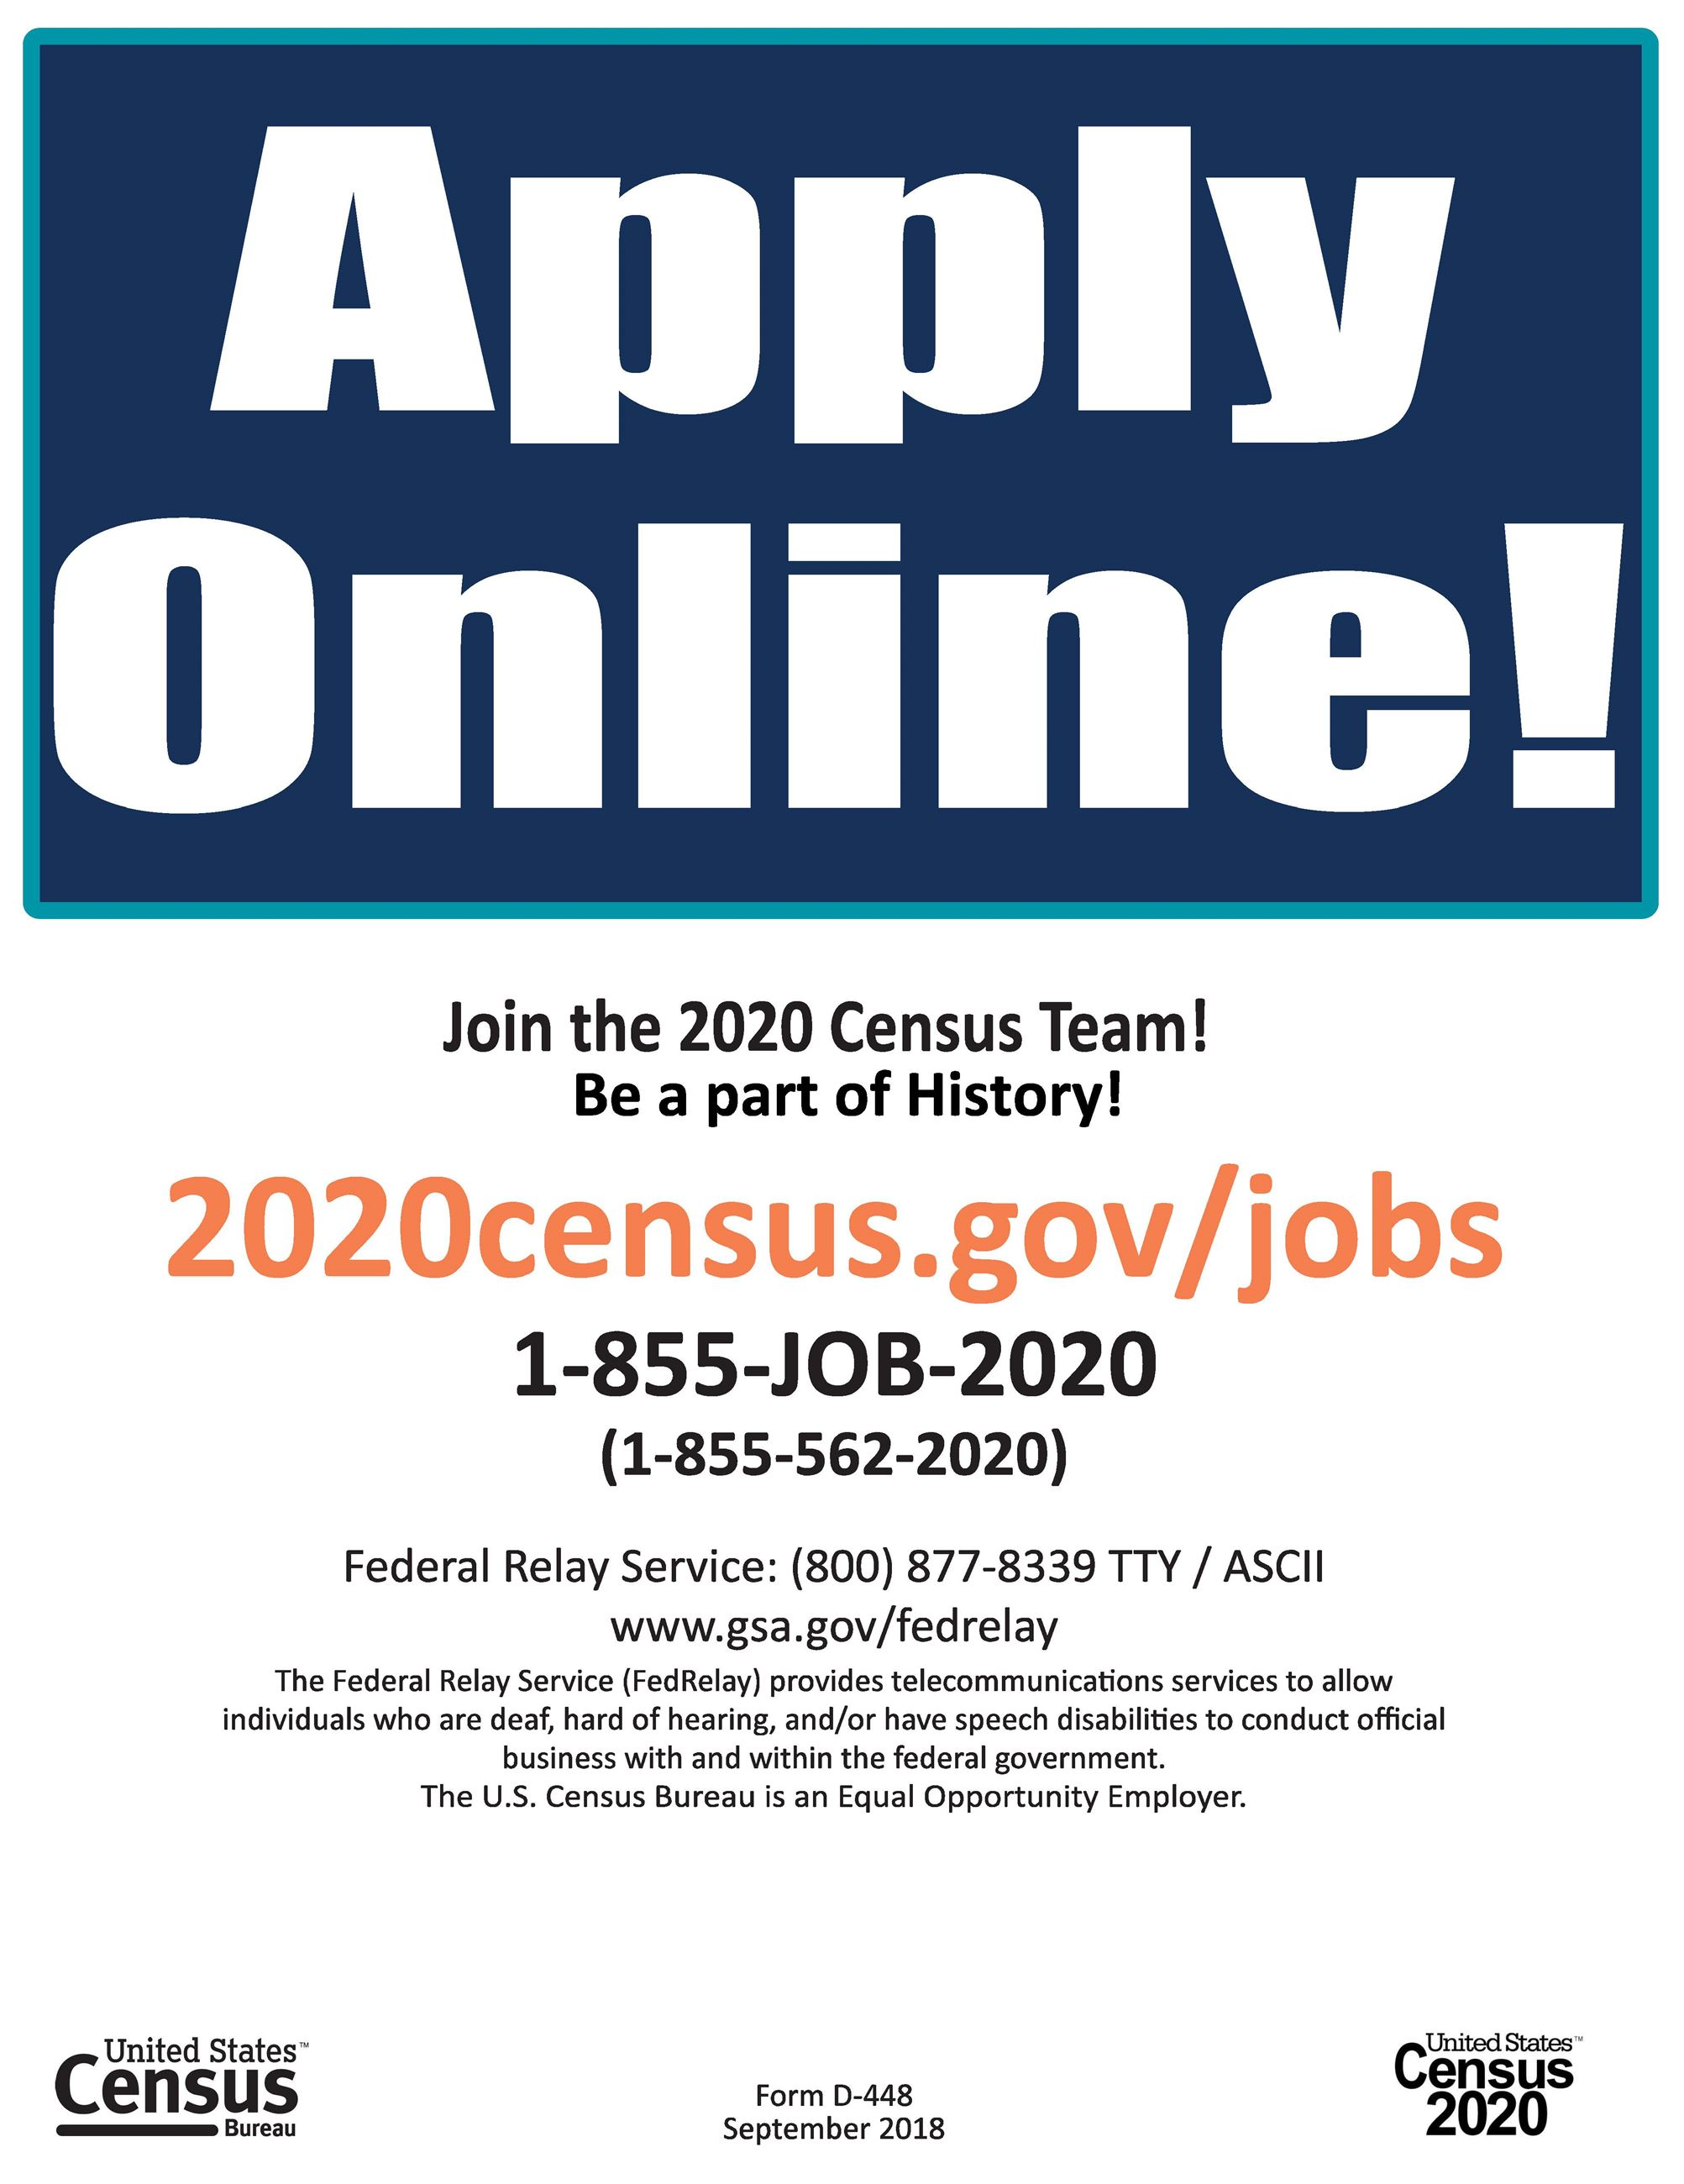 Census Recruiting Flyer JPEG Format